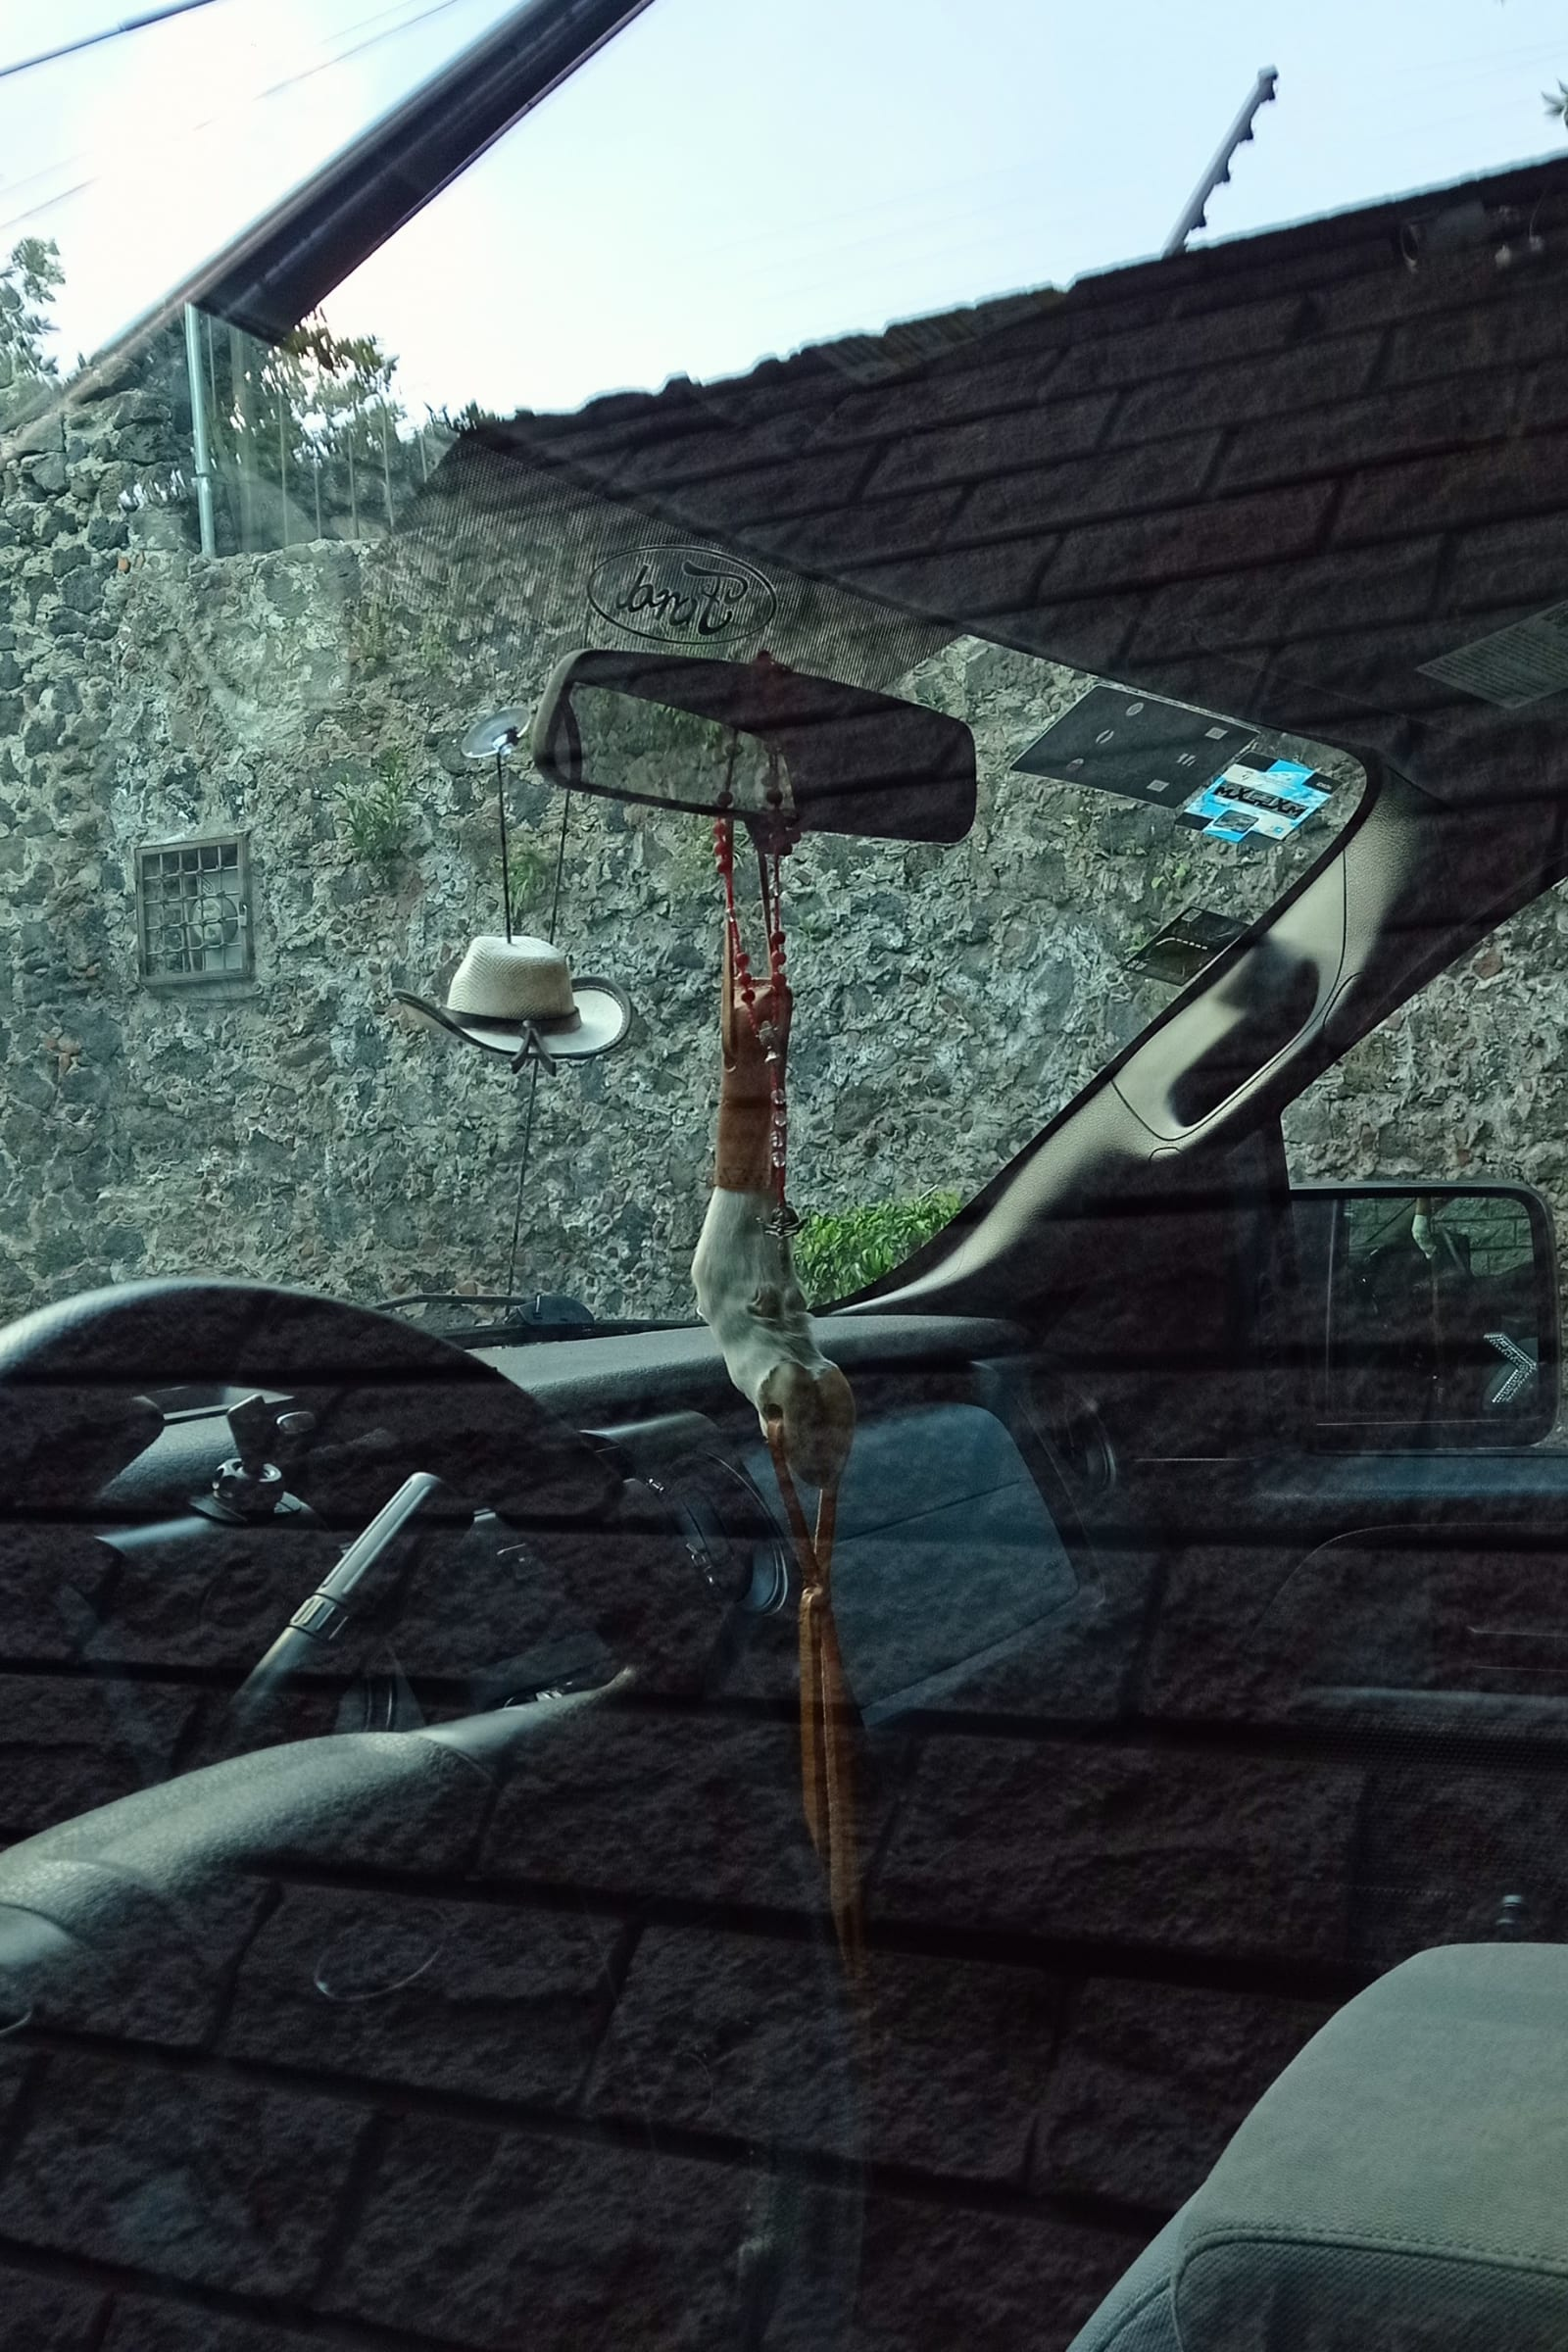 lucky man - two amulets are suspended in a Ford 4x4 - amulets (2), Ford 4x4 - paul lahana